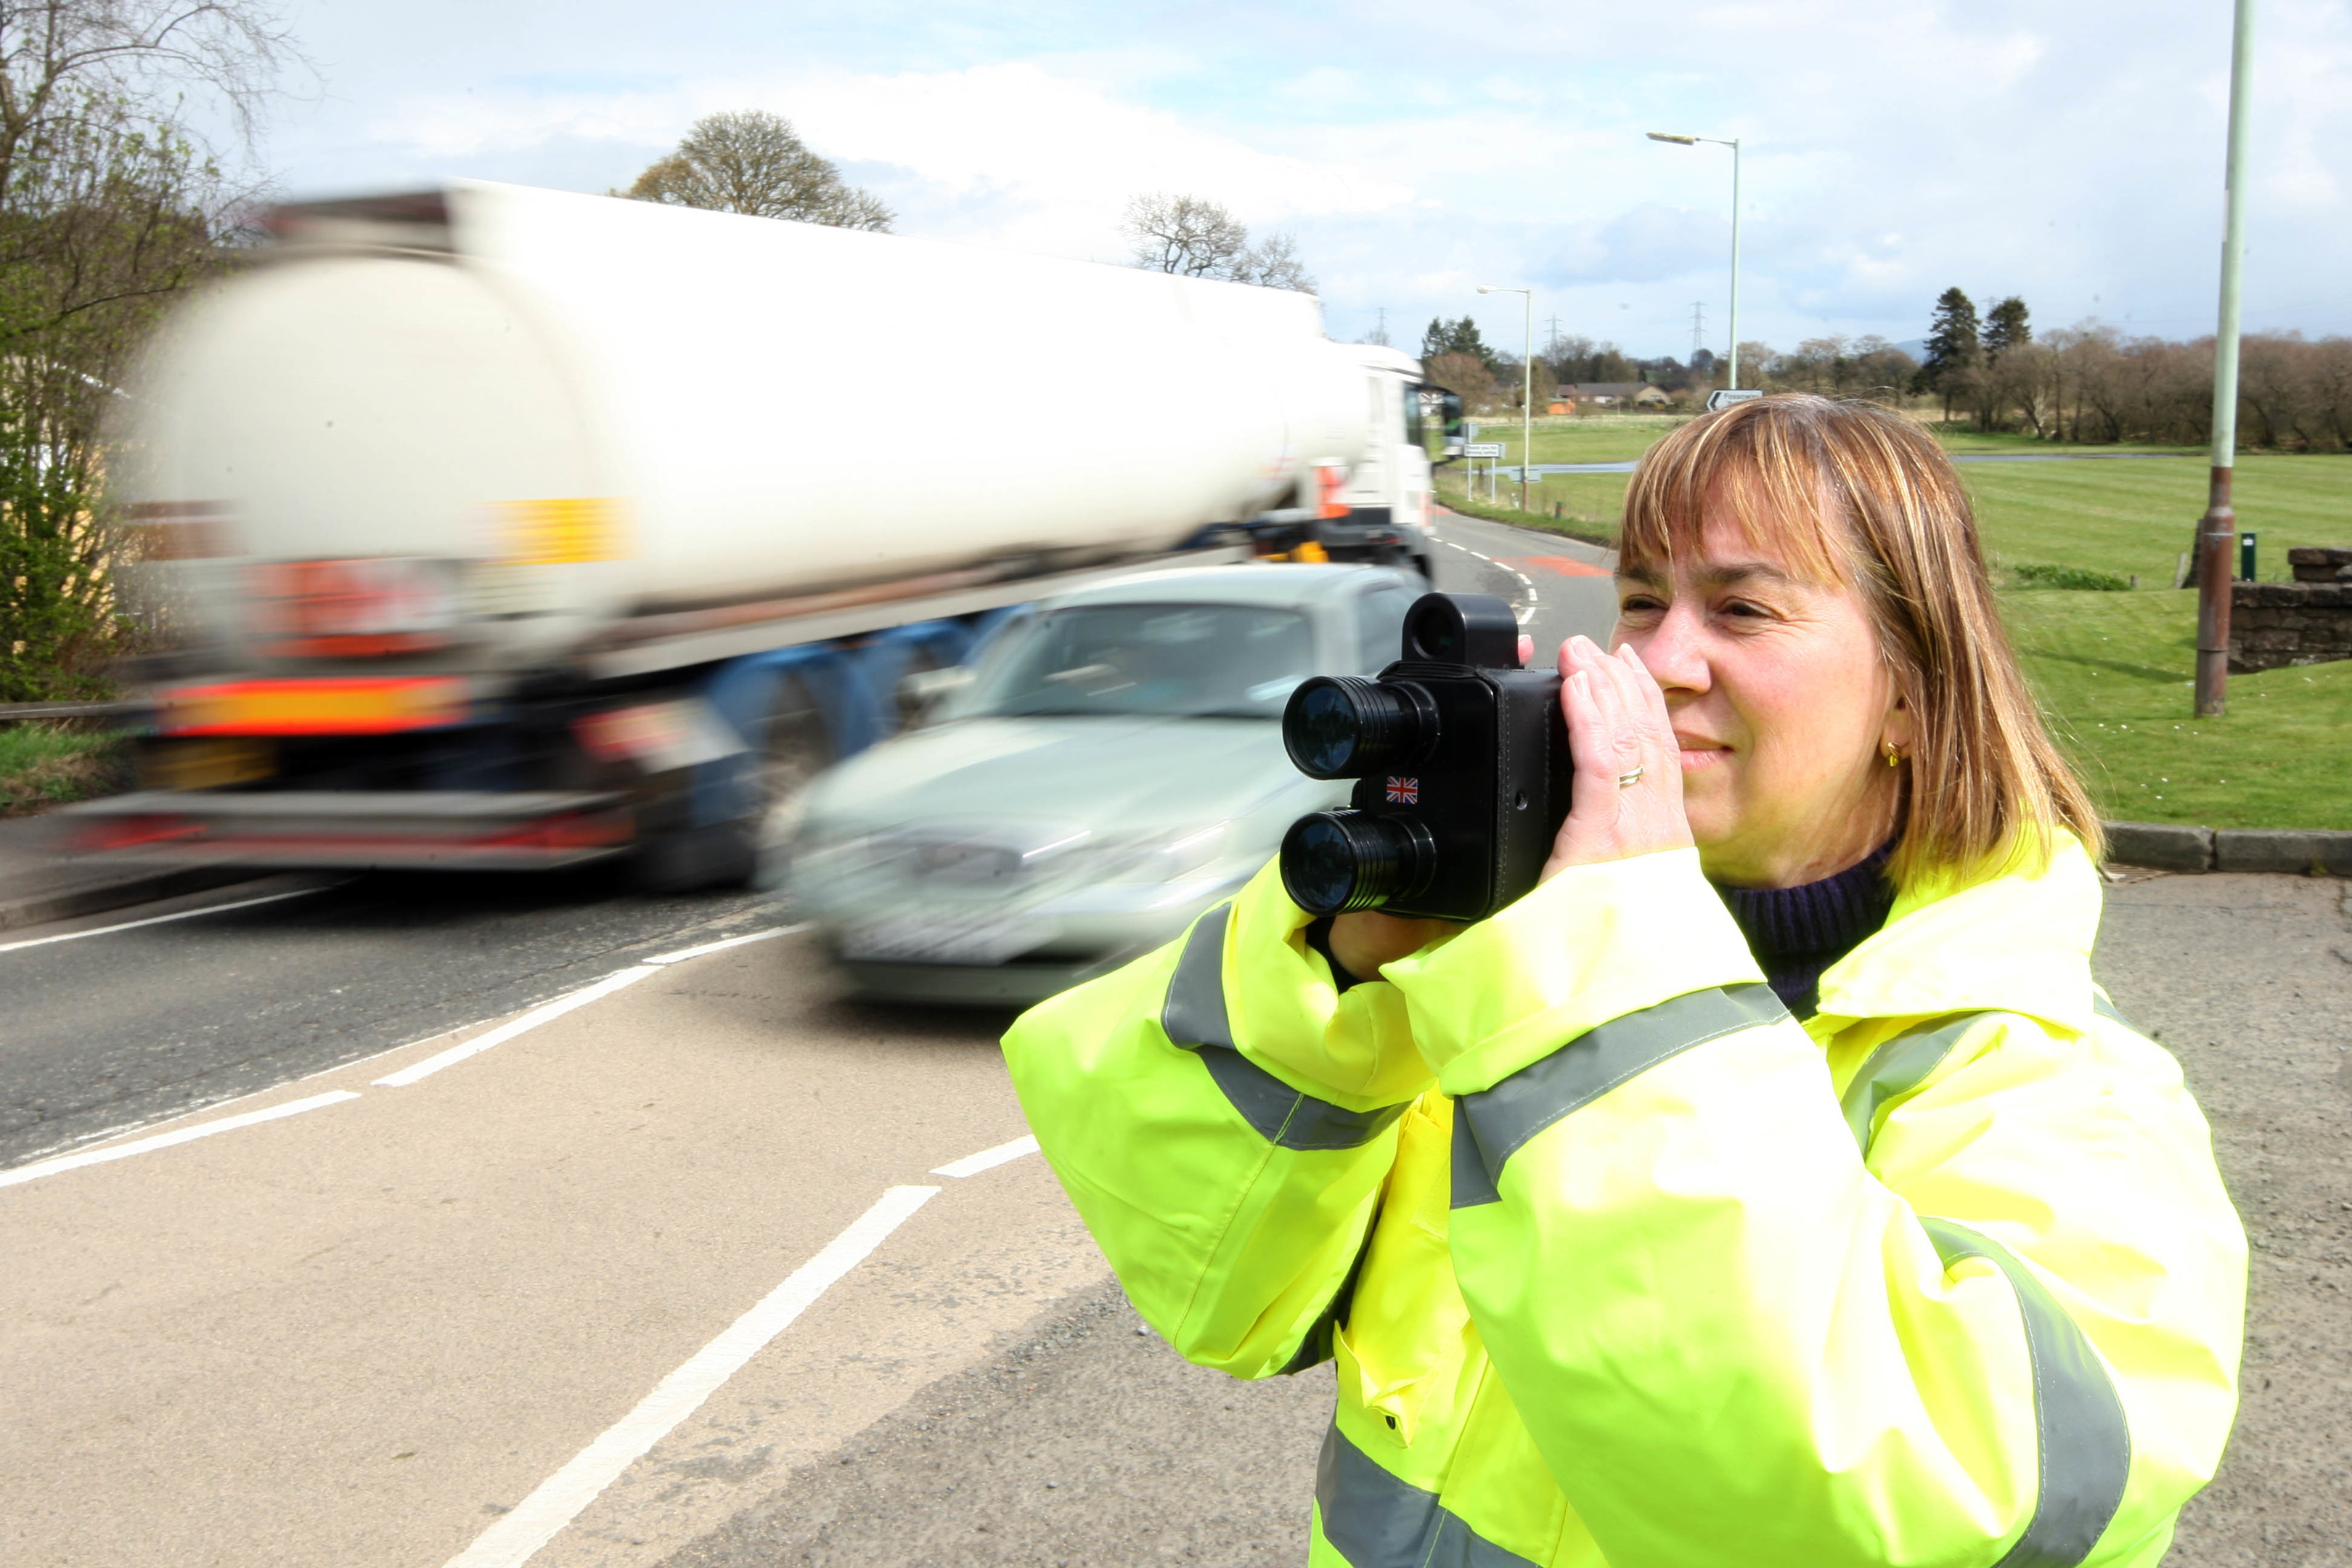 Community Speed Watch Volunteer Trudy Duffy-Wigman keeping an eye on motorists on the A977 at Crook of Devon. The scheme was abandoned by Police Scotland despite its success but could now be resurrected to protect communities across Kinross-shire.